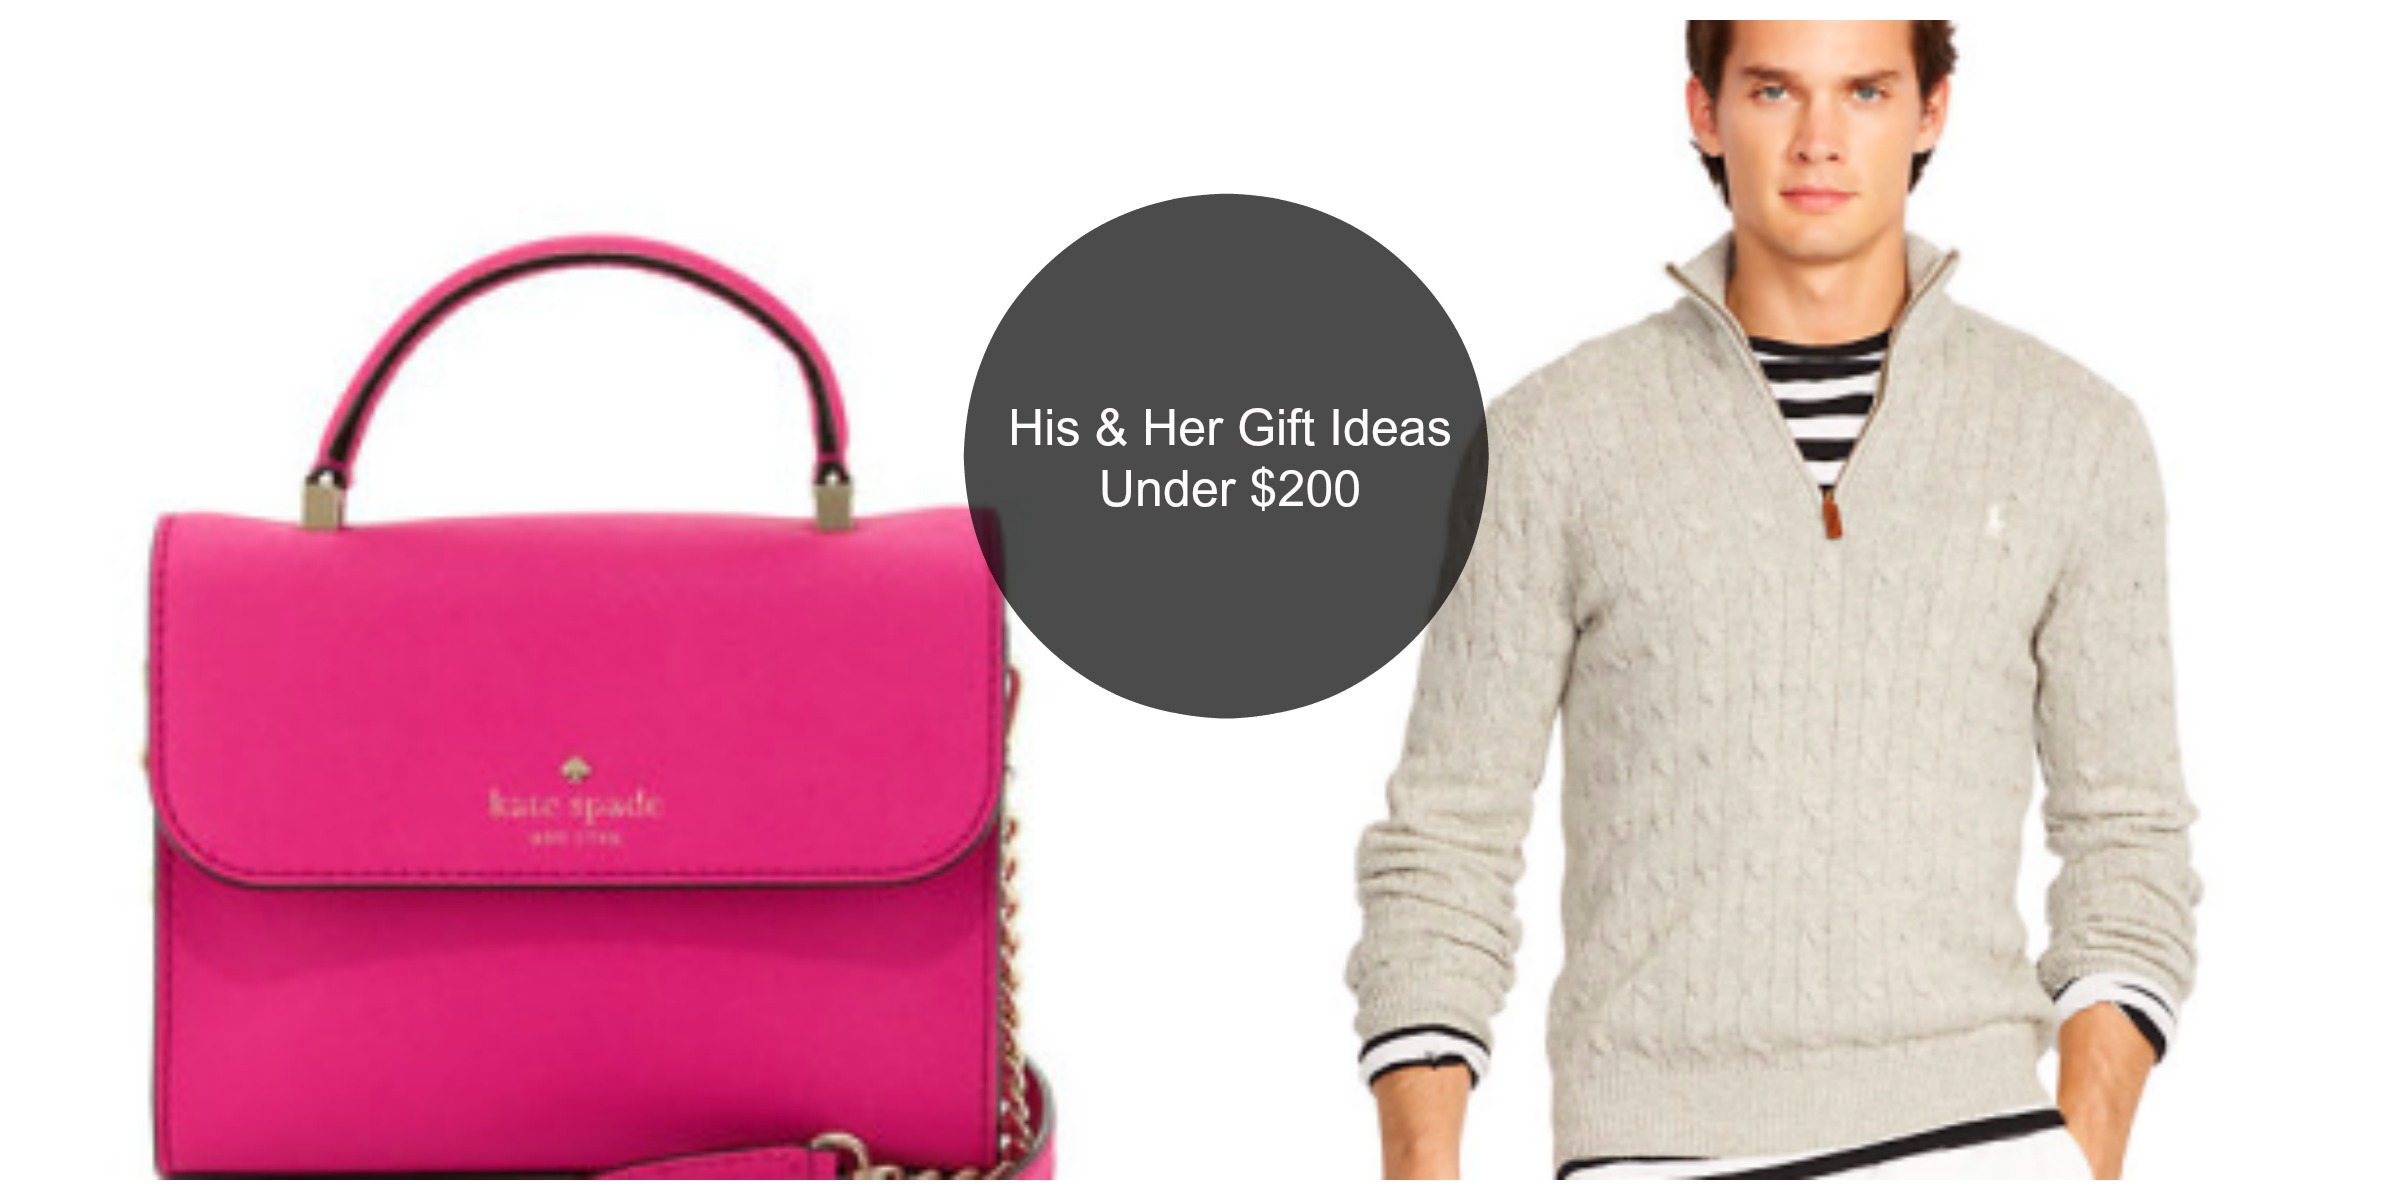 His and her gift ideas